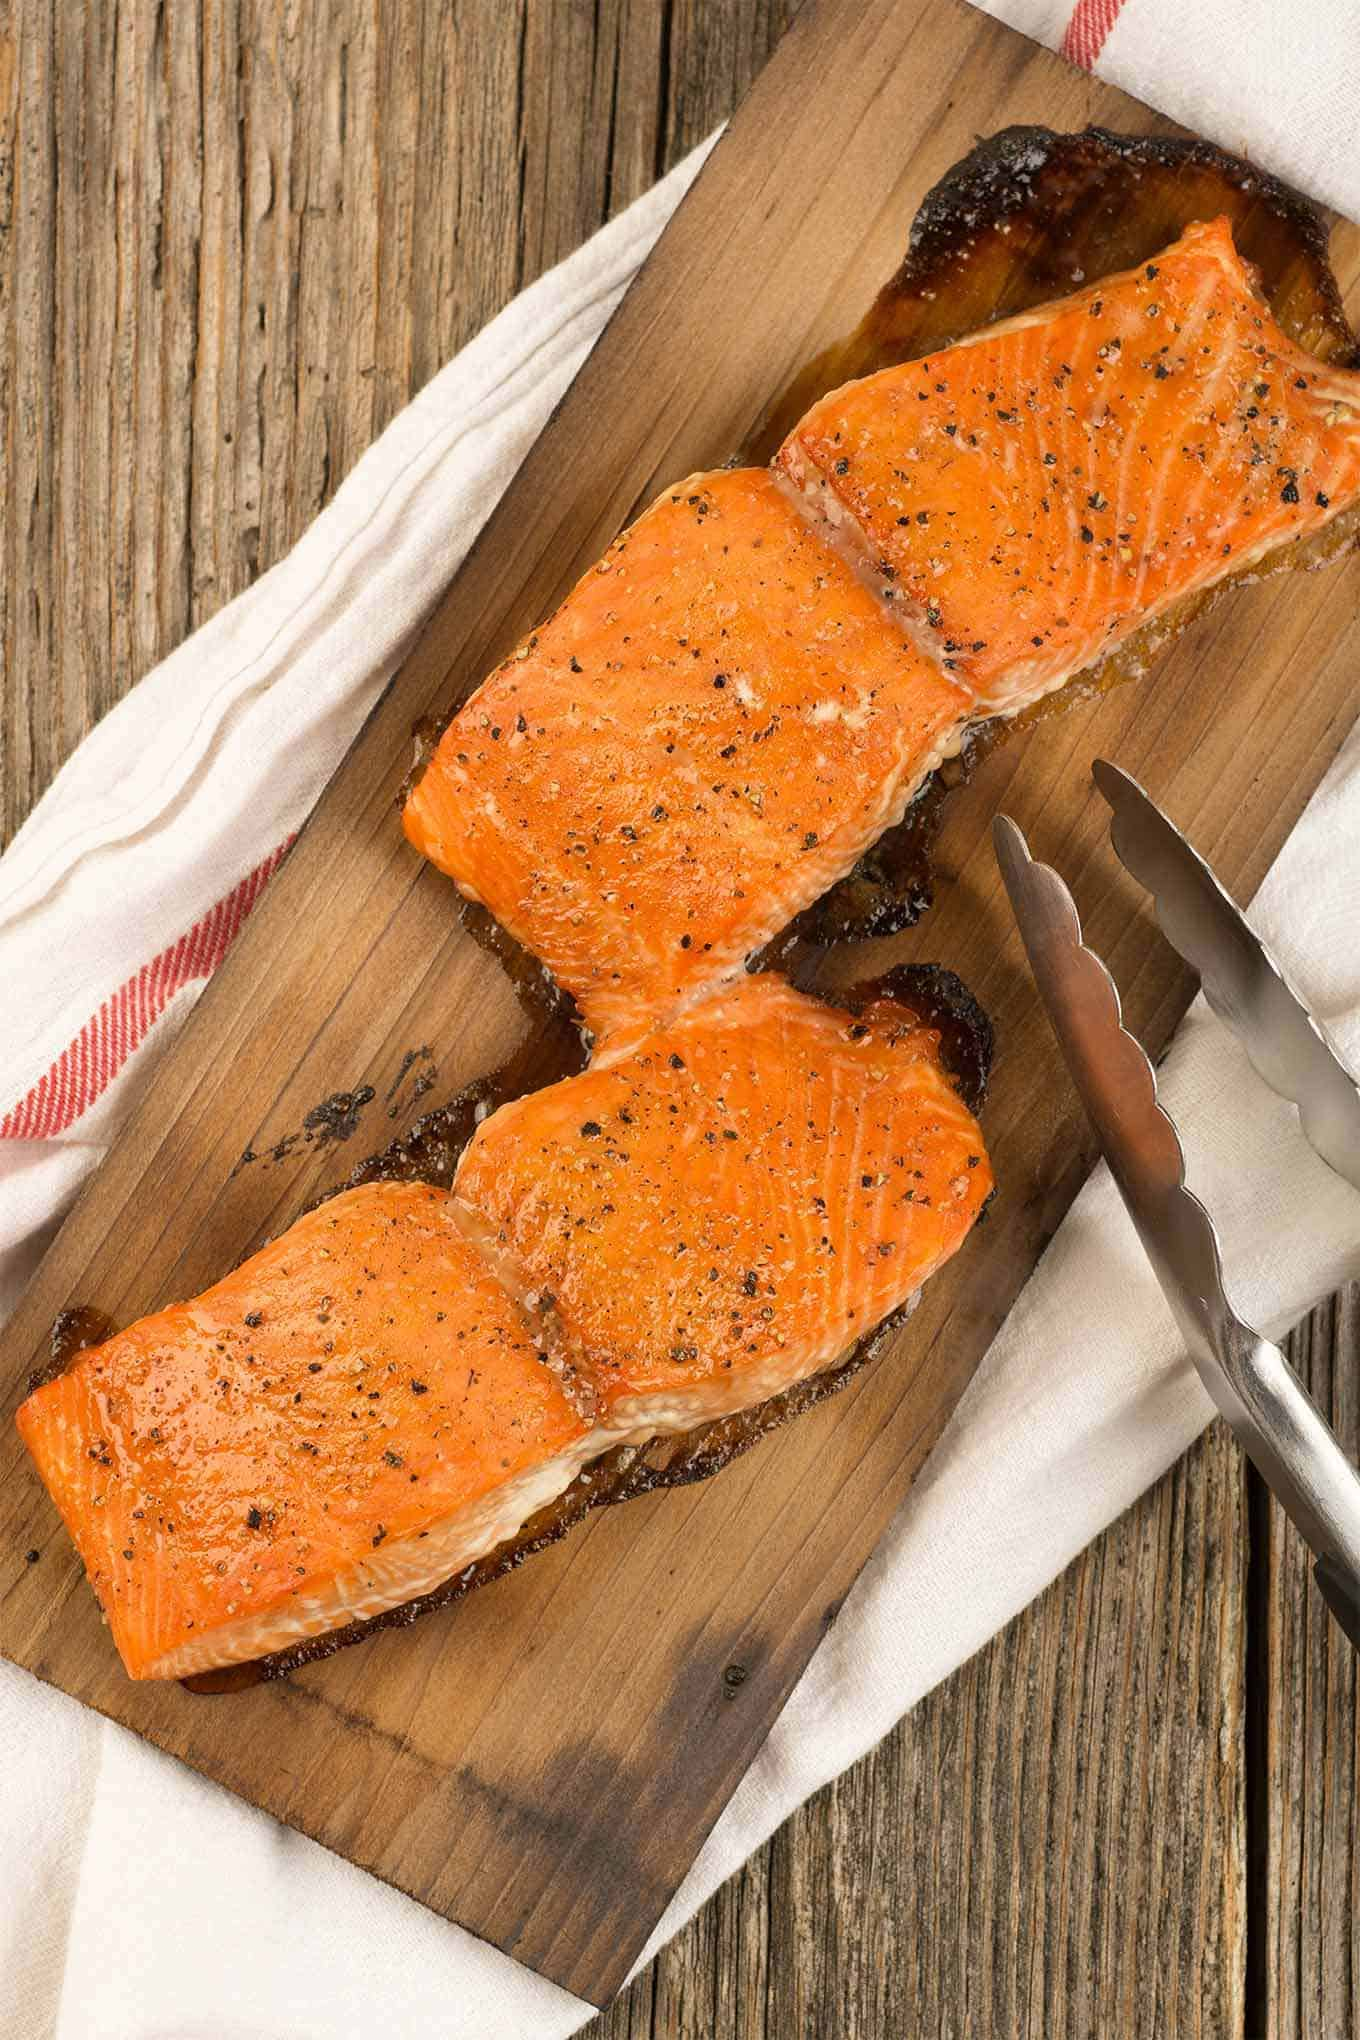 Two grilled salmon fillets on a cedar plank with grilling tongs.